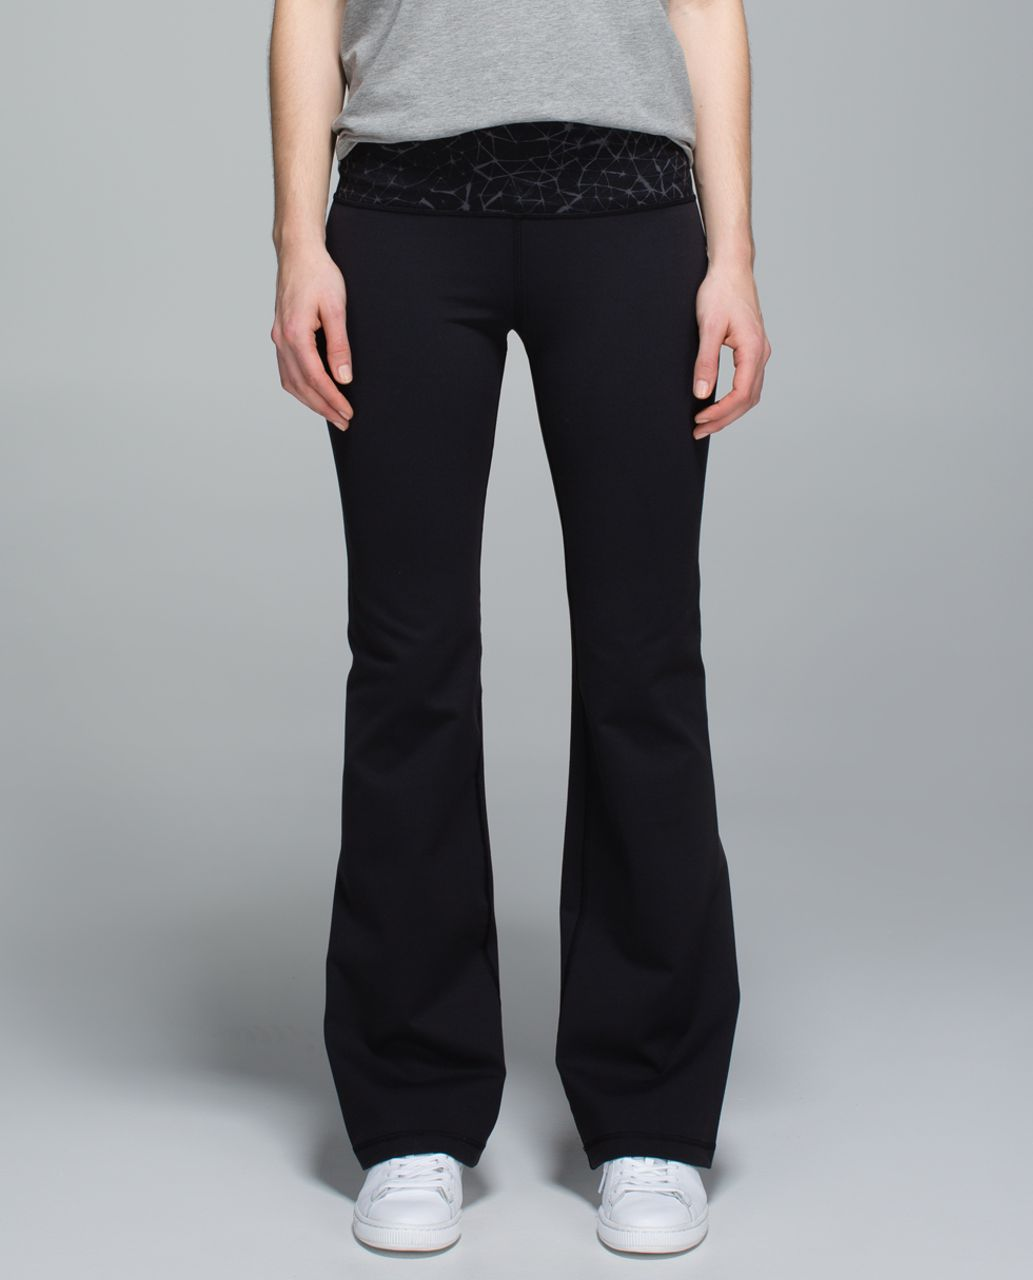 Lululemon Groove Pant II *Full-On Luon (Roll Down - Tall) - Black / Star Crushed Coal Black